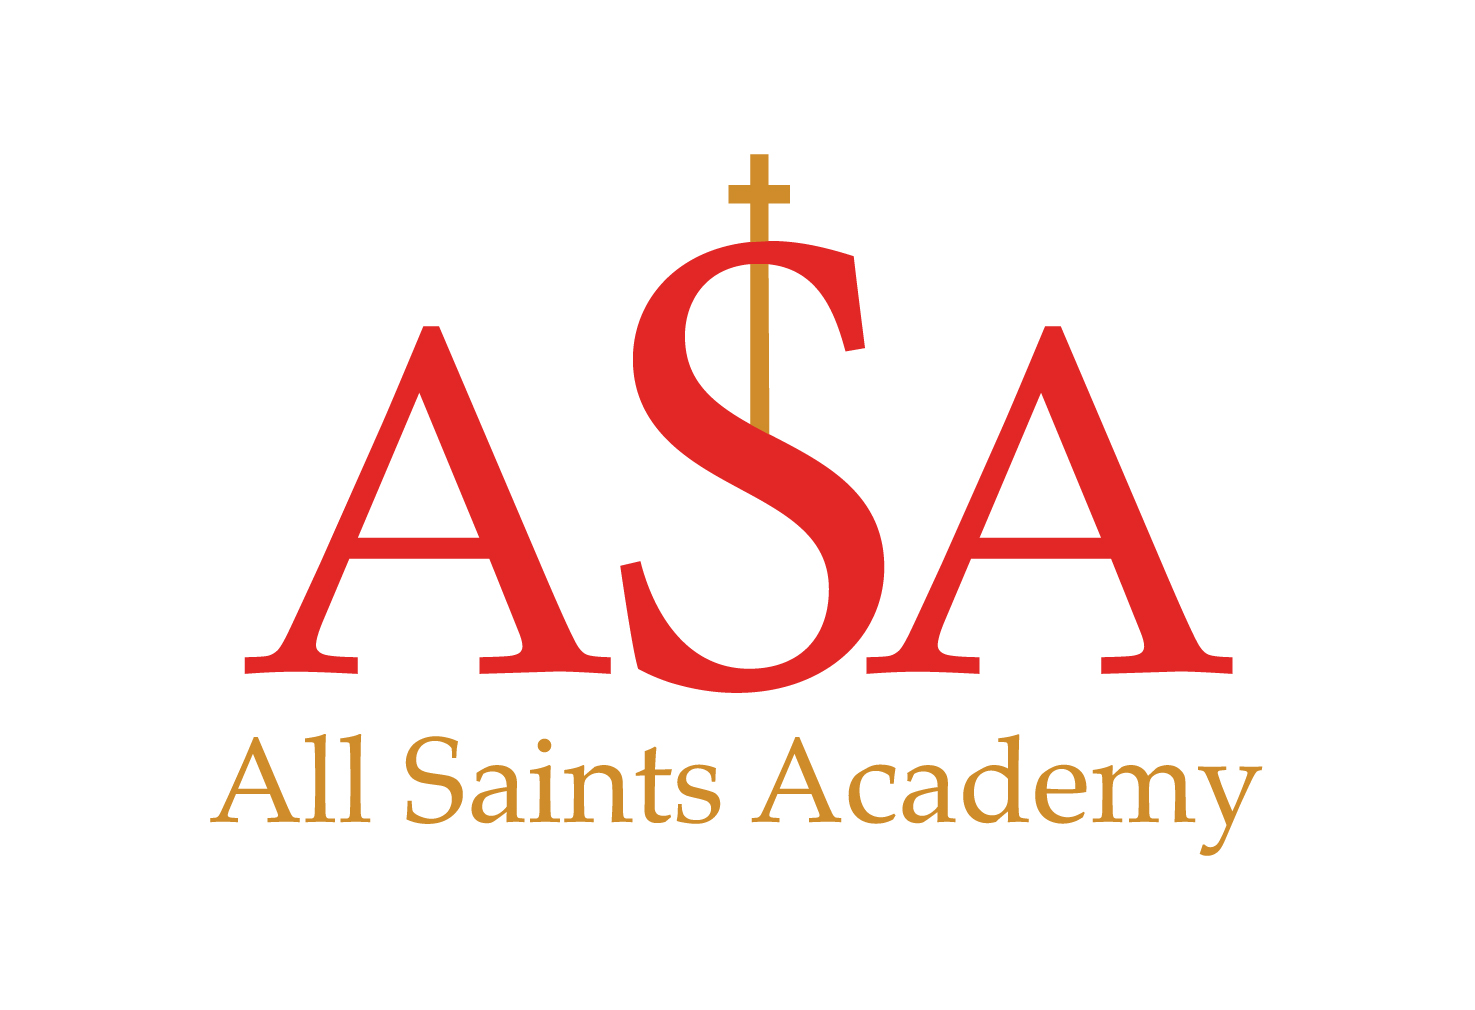 2007 – 2008 - The final year at St. Alphonsus Parish School was located on the parish campus. The four northeast Grand Rapids parishes (St. Alphonsus, Blessed Sacrament, St. Isidore, and St. Jude) decided to consolidate schools to form our new parish school, All Saints Academy (ASA). In 2008, ASA opened to serve the students and families of the four parishes at two campuses – an elementary school located at the Diamond Avenue Campus and a middle school at the 4 Mile Campus. The proud tradition of St. Al's students still continues today.